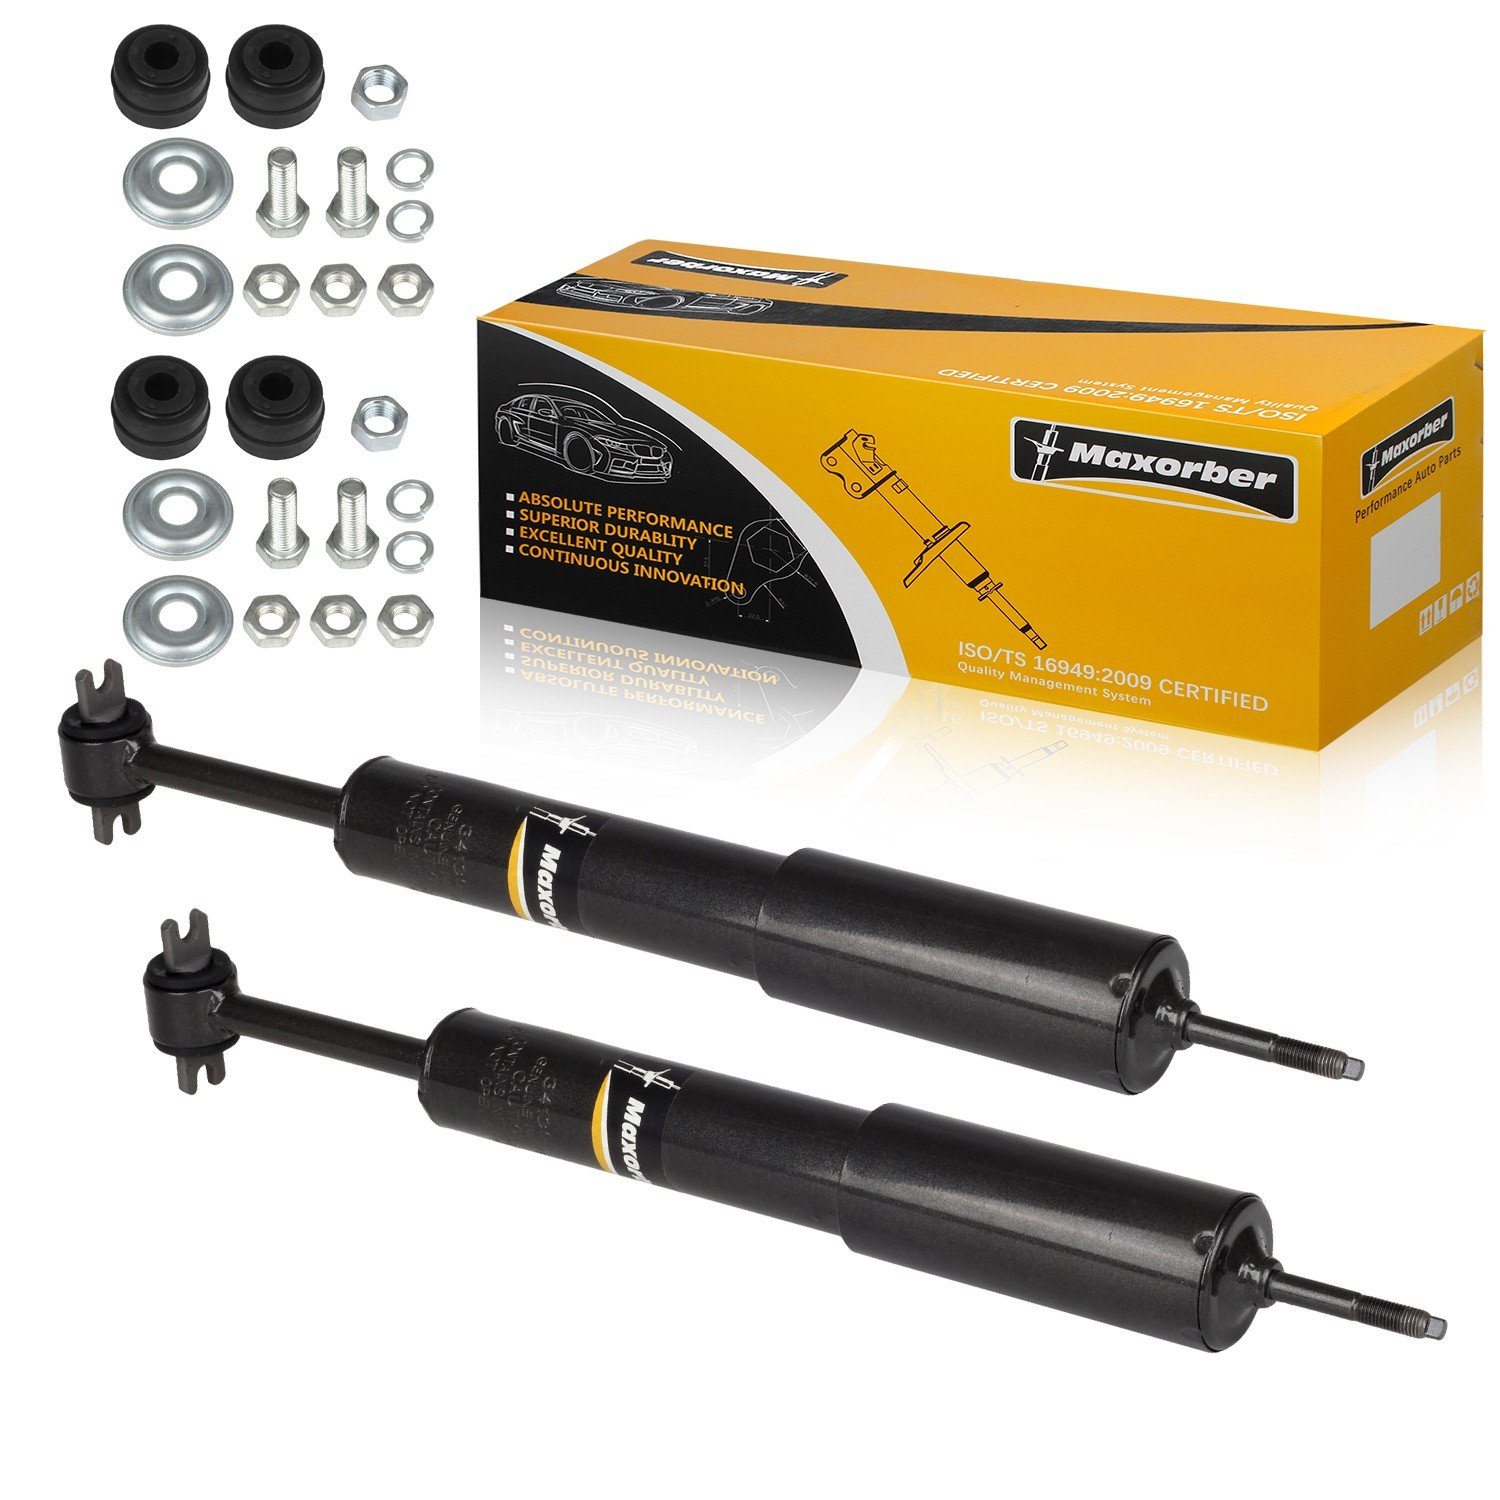 Maxorber Front Pair Shocks Absorber Struts Compatible with 1995 1996 1997 1998 1999 2000 2001 Ford Explorer 98 99 00 01 02 03 2004 2005 2006 Ford Ranger 97 98 99 00 01 Mercury Mountaineer 12140187